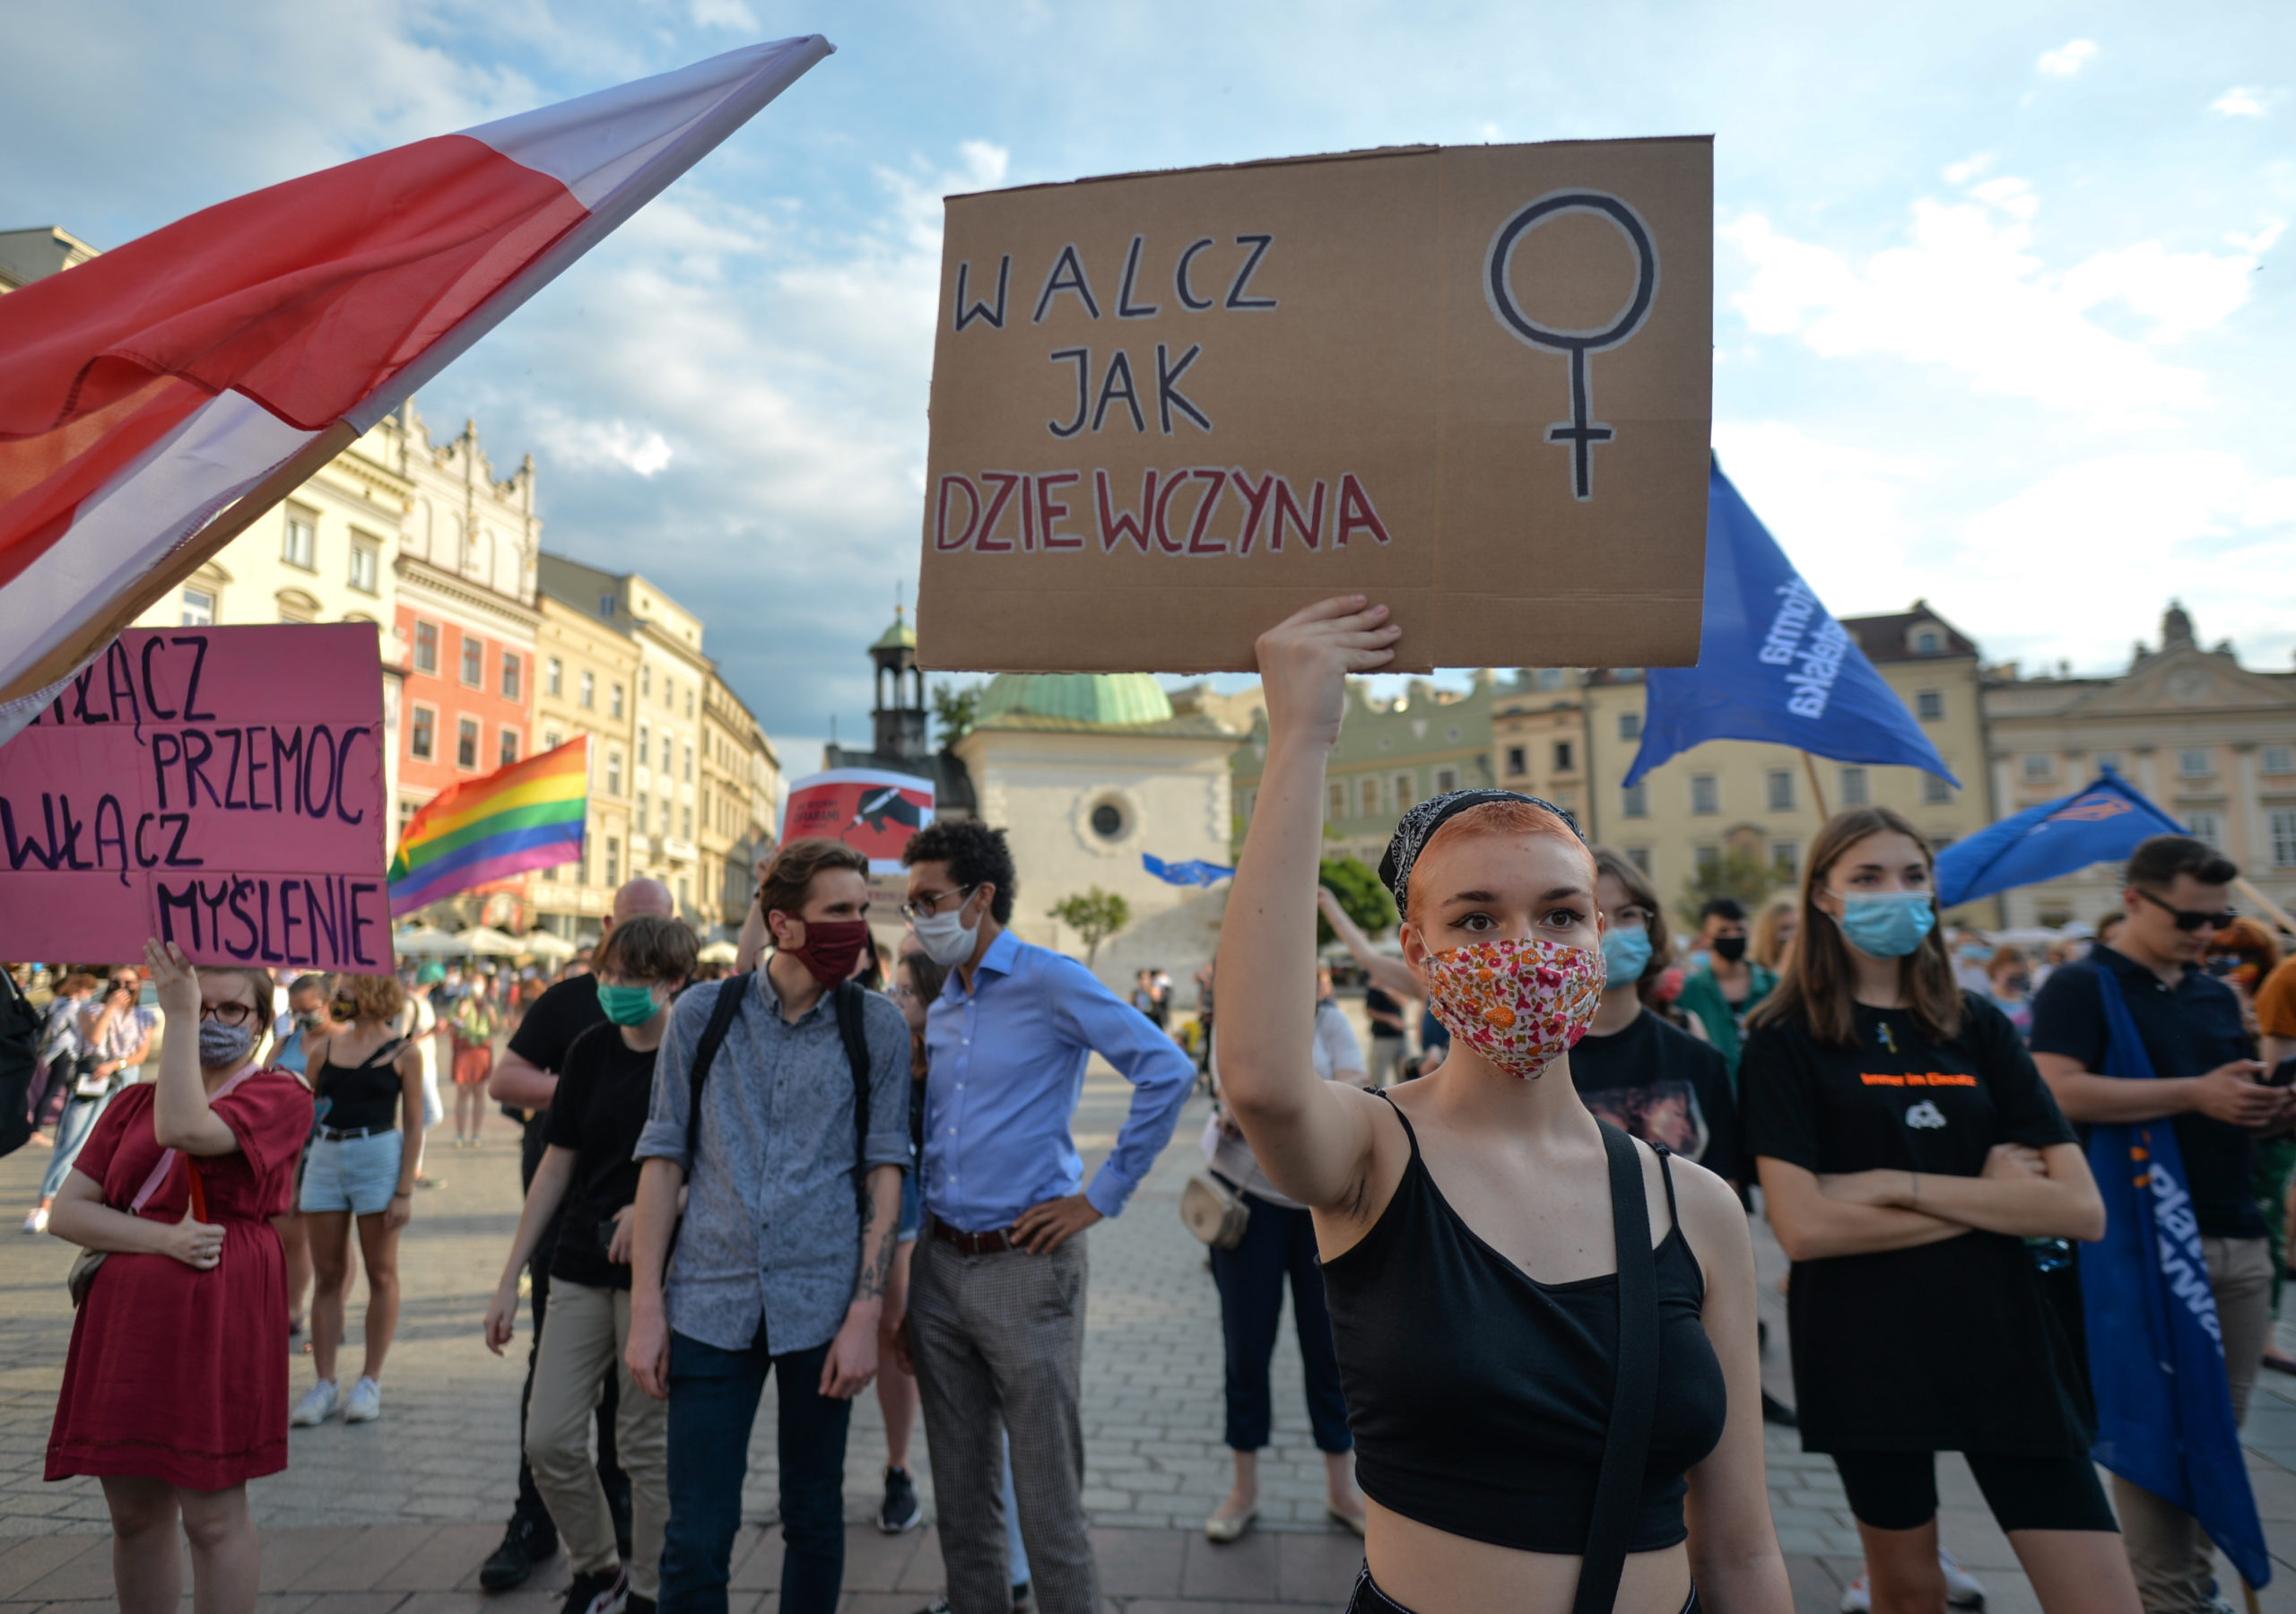 Activists gathered on Friday afternoon at Krakow's Main Market Square to voice their opposition to the government's plan to withdraw Poland from the 2011 Council of Europe's Istanbul Convention on combating domestic violence.